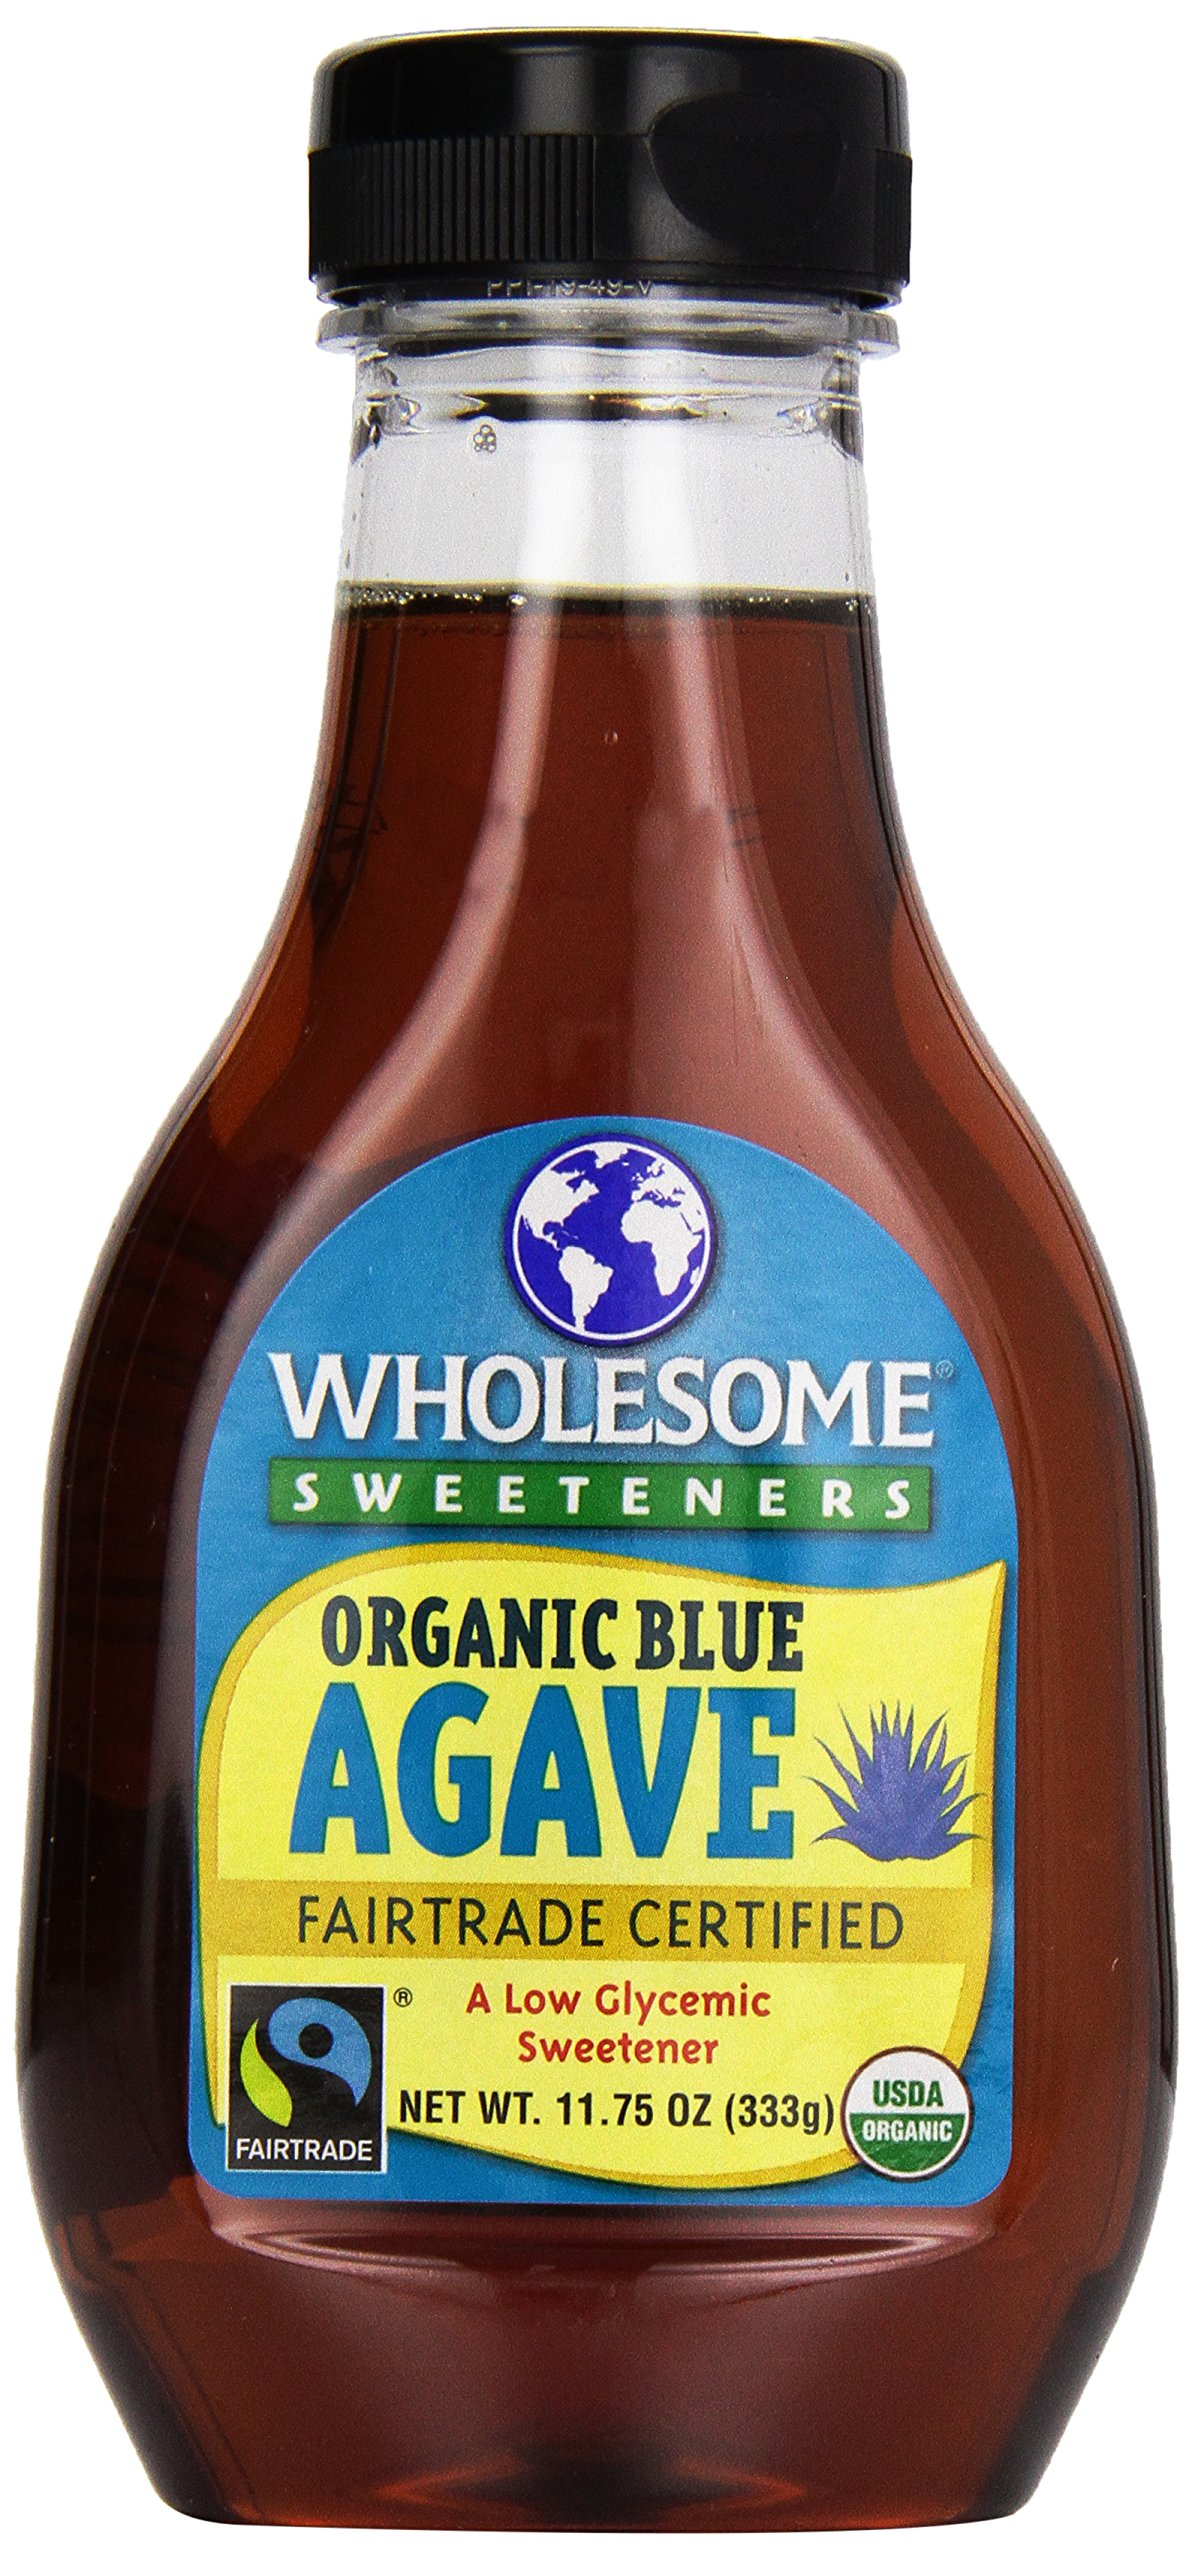 Wholesome Sweeteners Organic Blue Agave, 11.75 oz